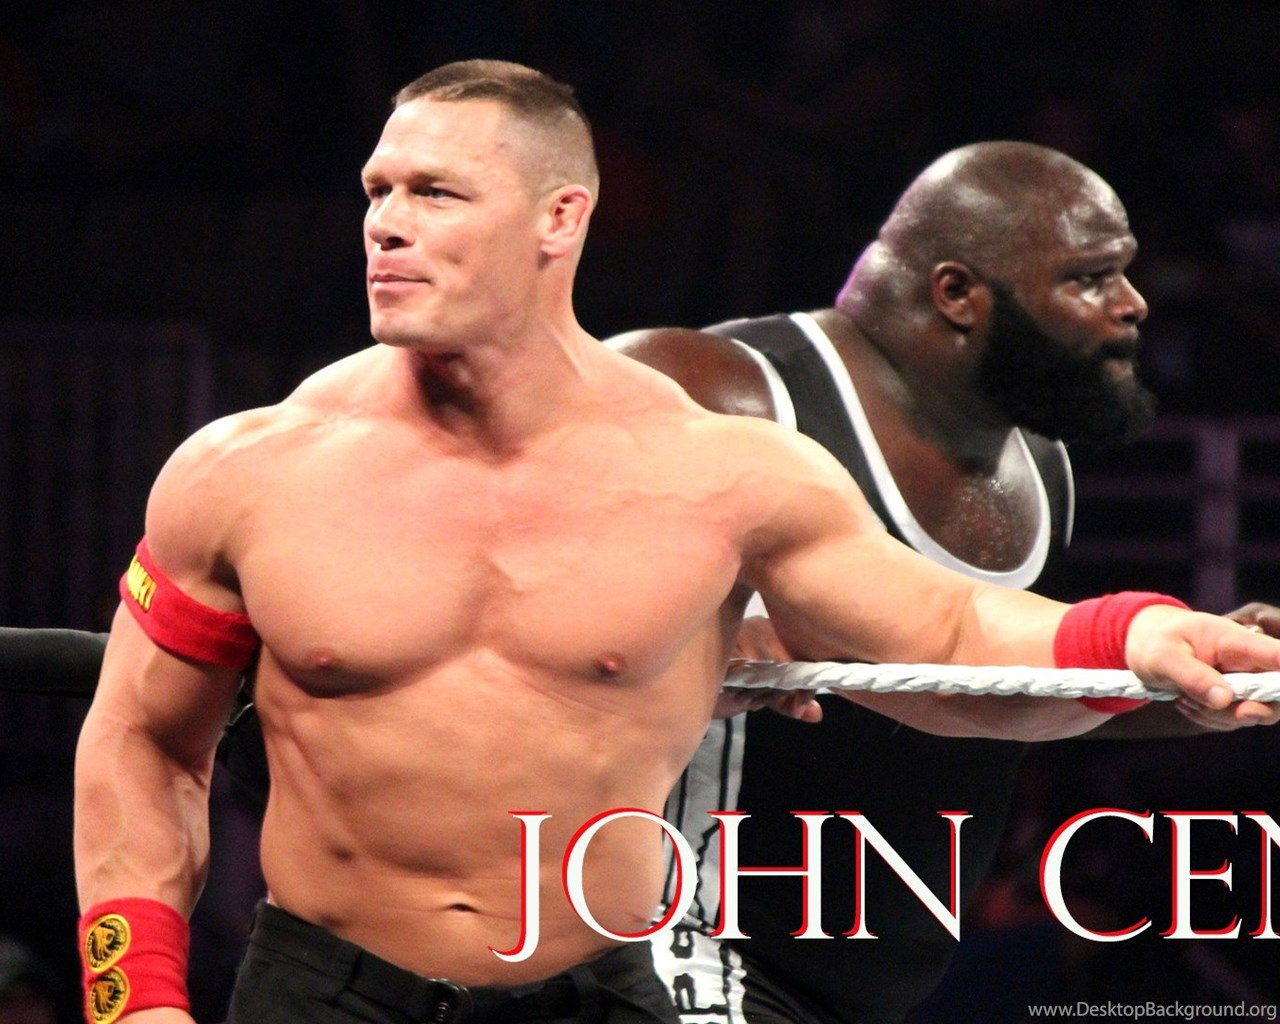 wwe john cena wallpapers download free high resolution desktop